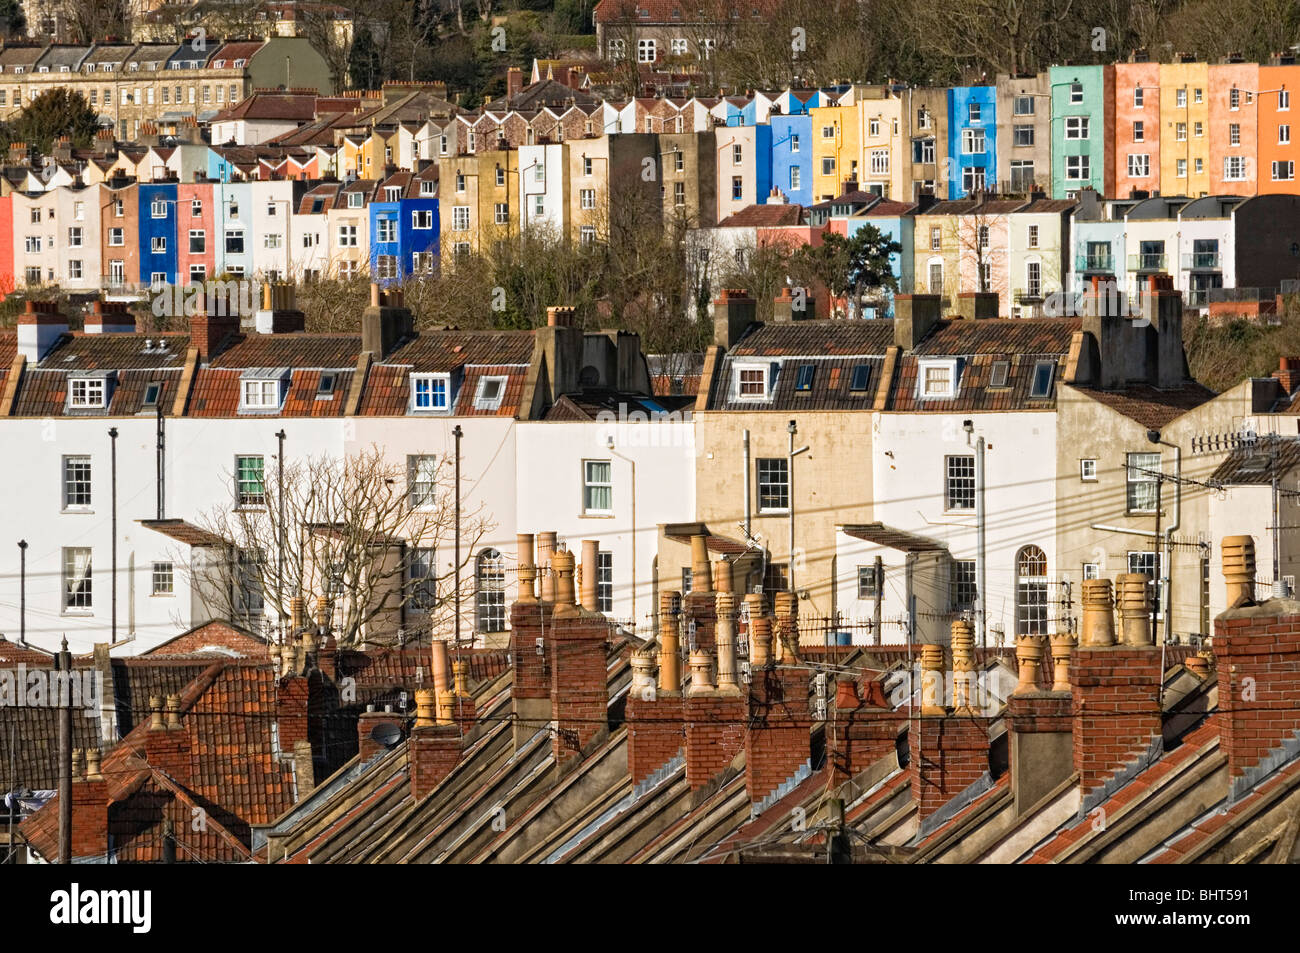 Old terraced housing tightly packed on a hill in sunlight - Stock Image